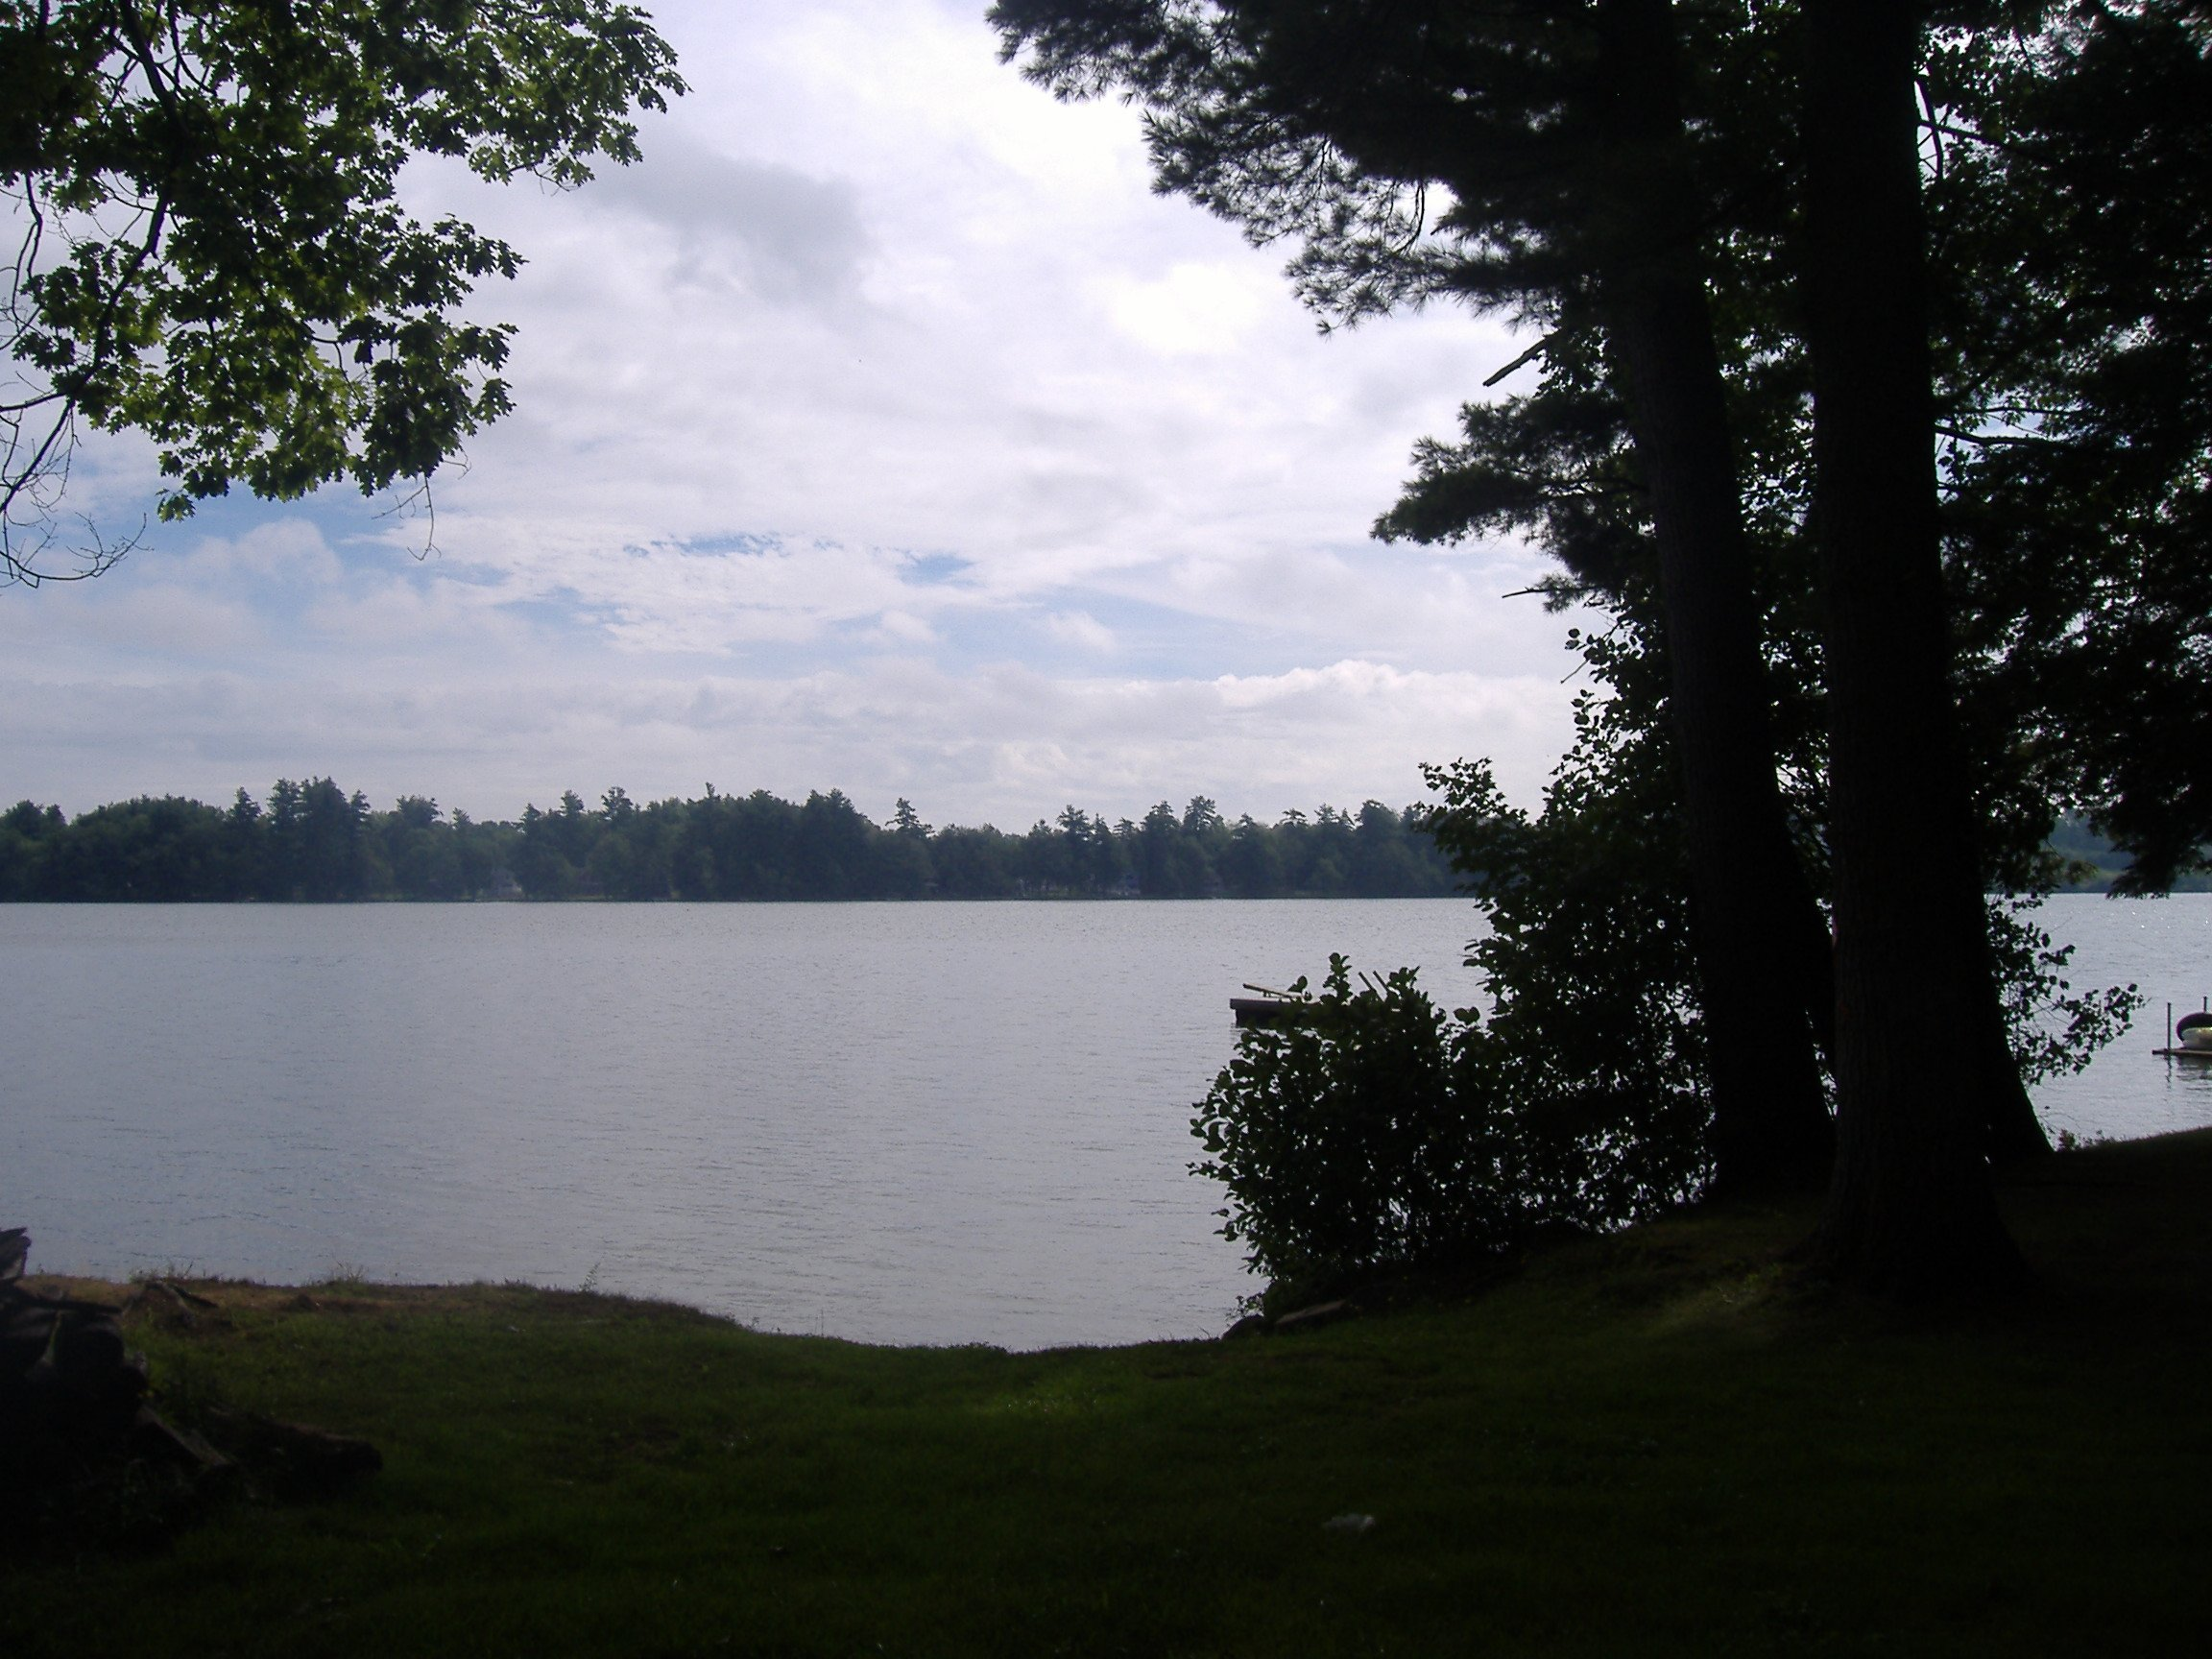 View of Lake from shared access point.